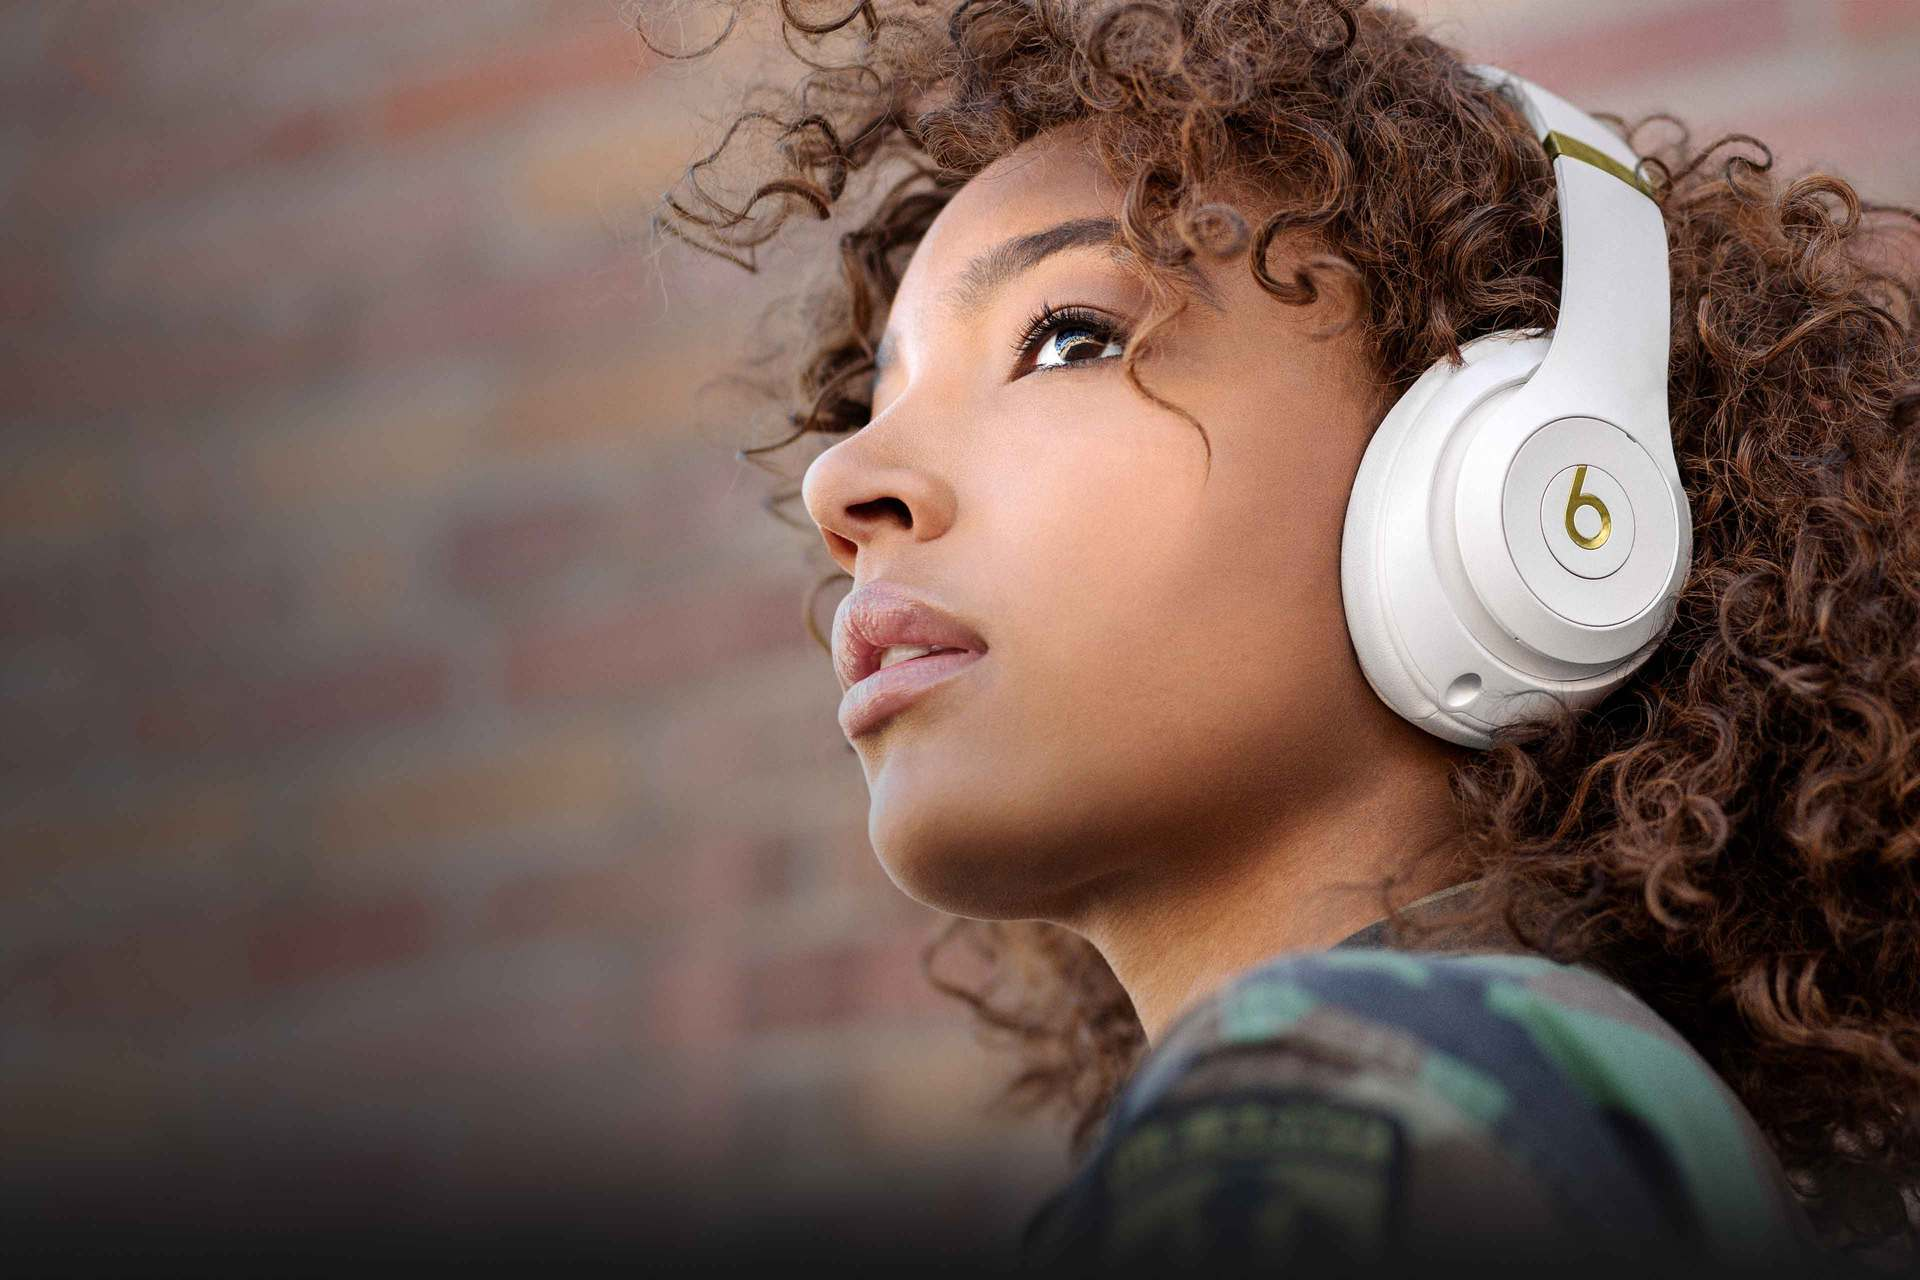 Beats Studio3 Wireless By Dre Home Stereo Speaker Wiring Diagrams On Whole House Audio Girl Wearing Headphone